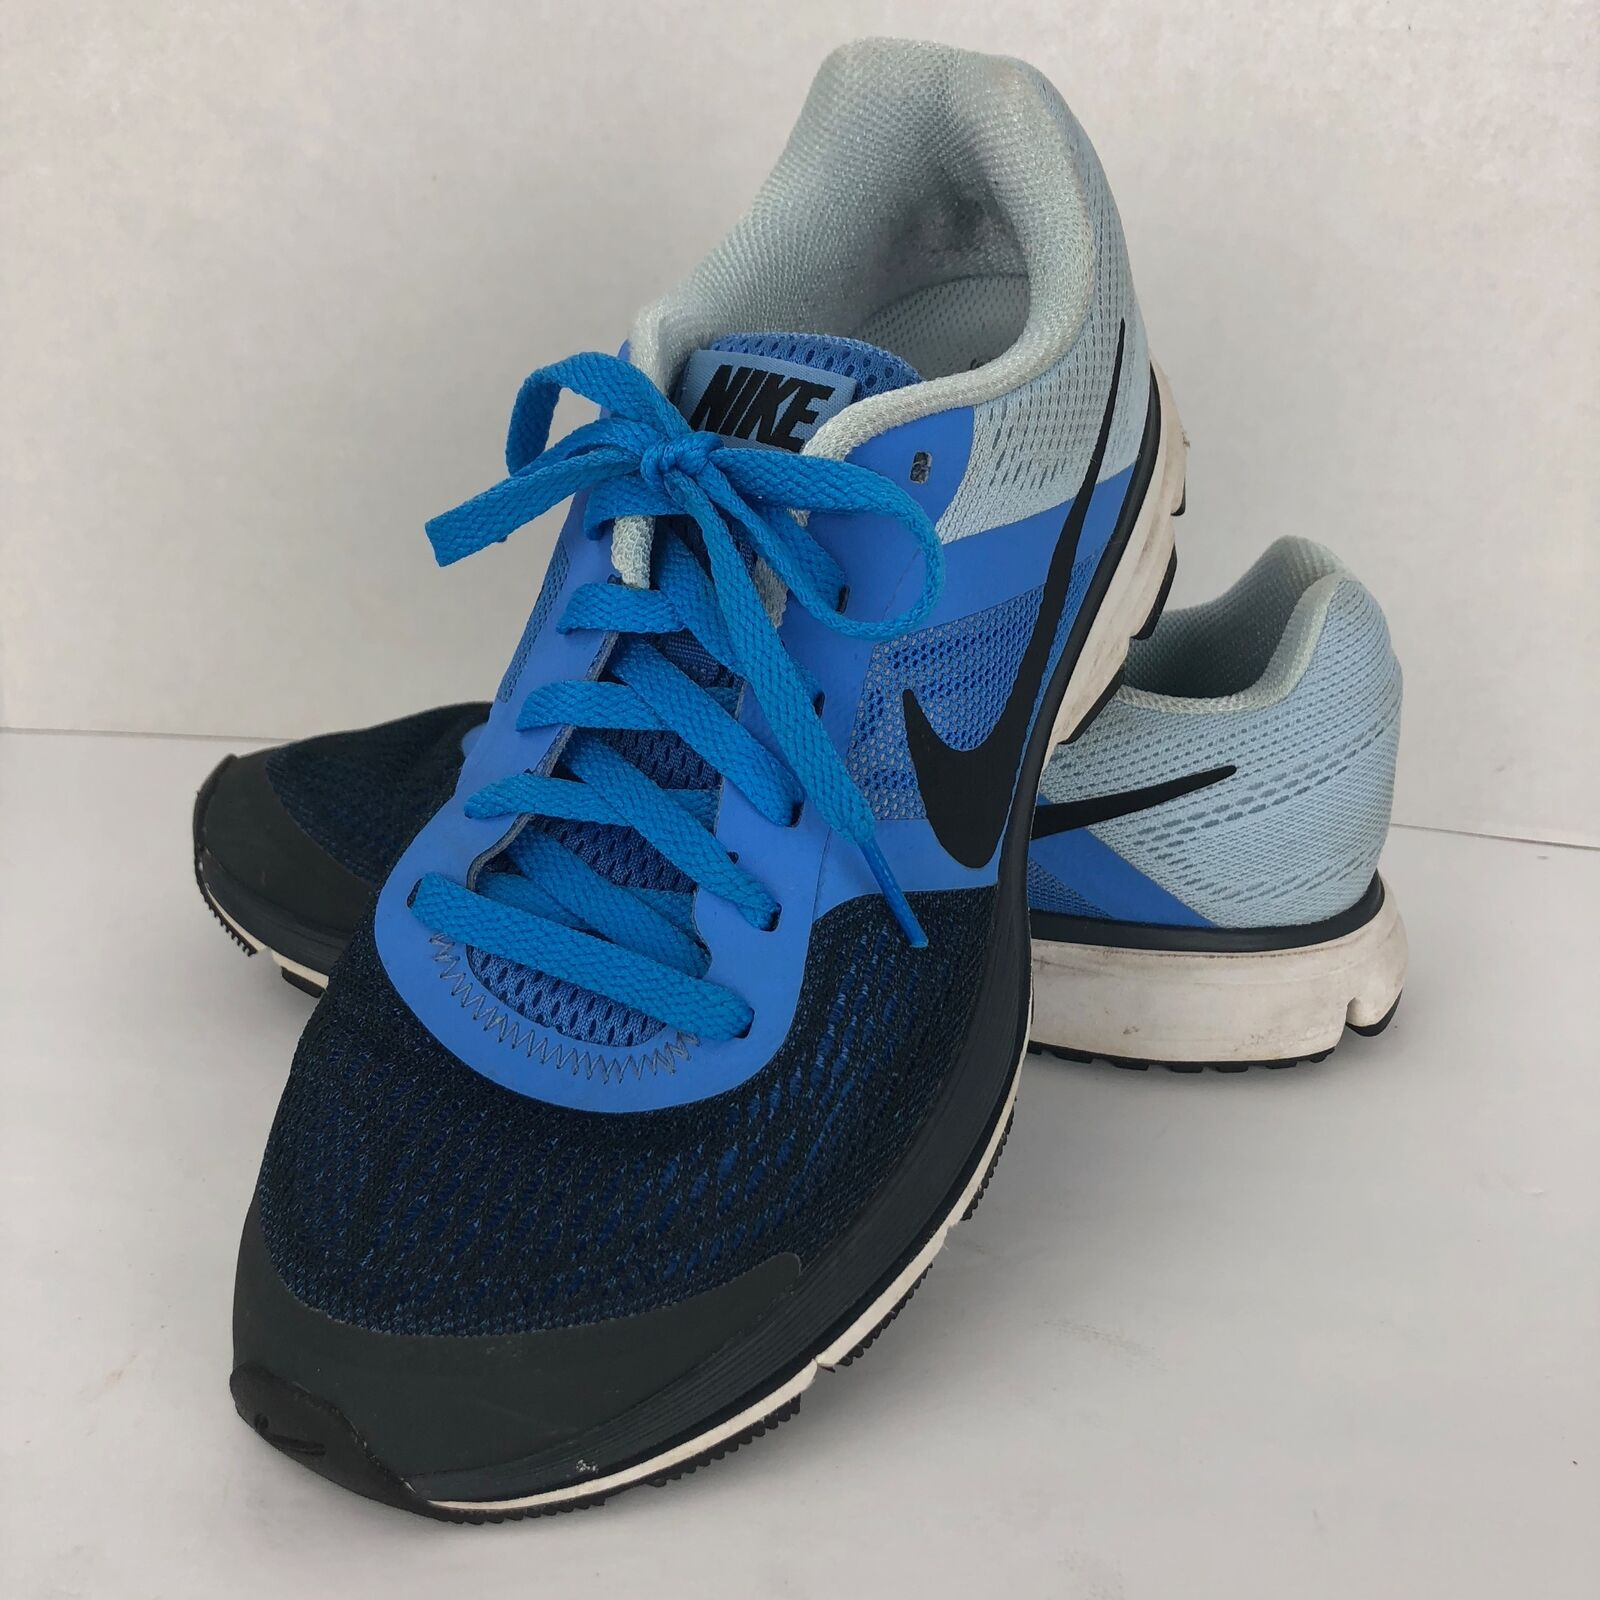 NIKE Pegasus 3D Fitsole Running Sneakers bluee Size 9 M Lace Up 599392-400